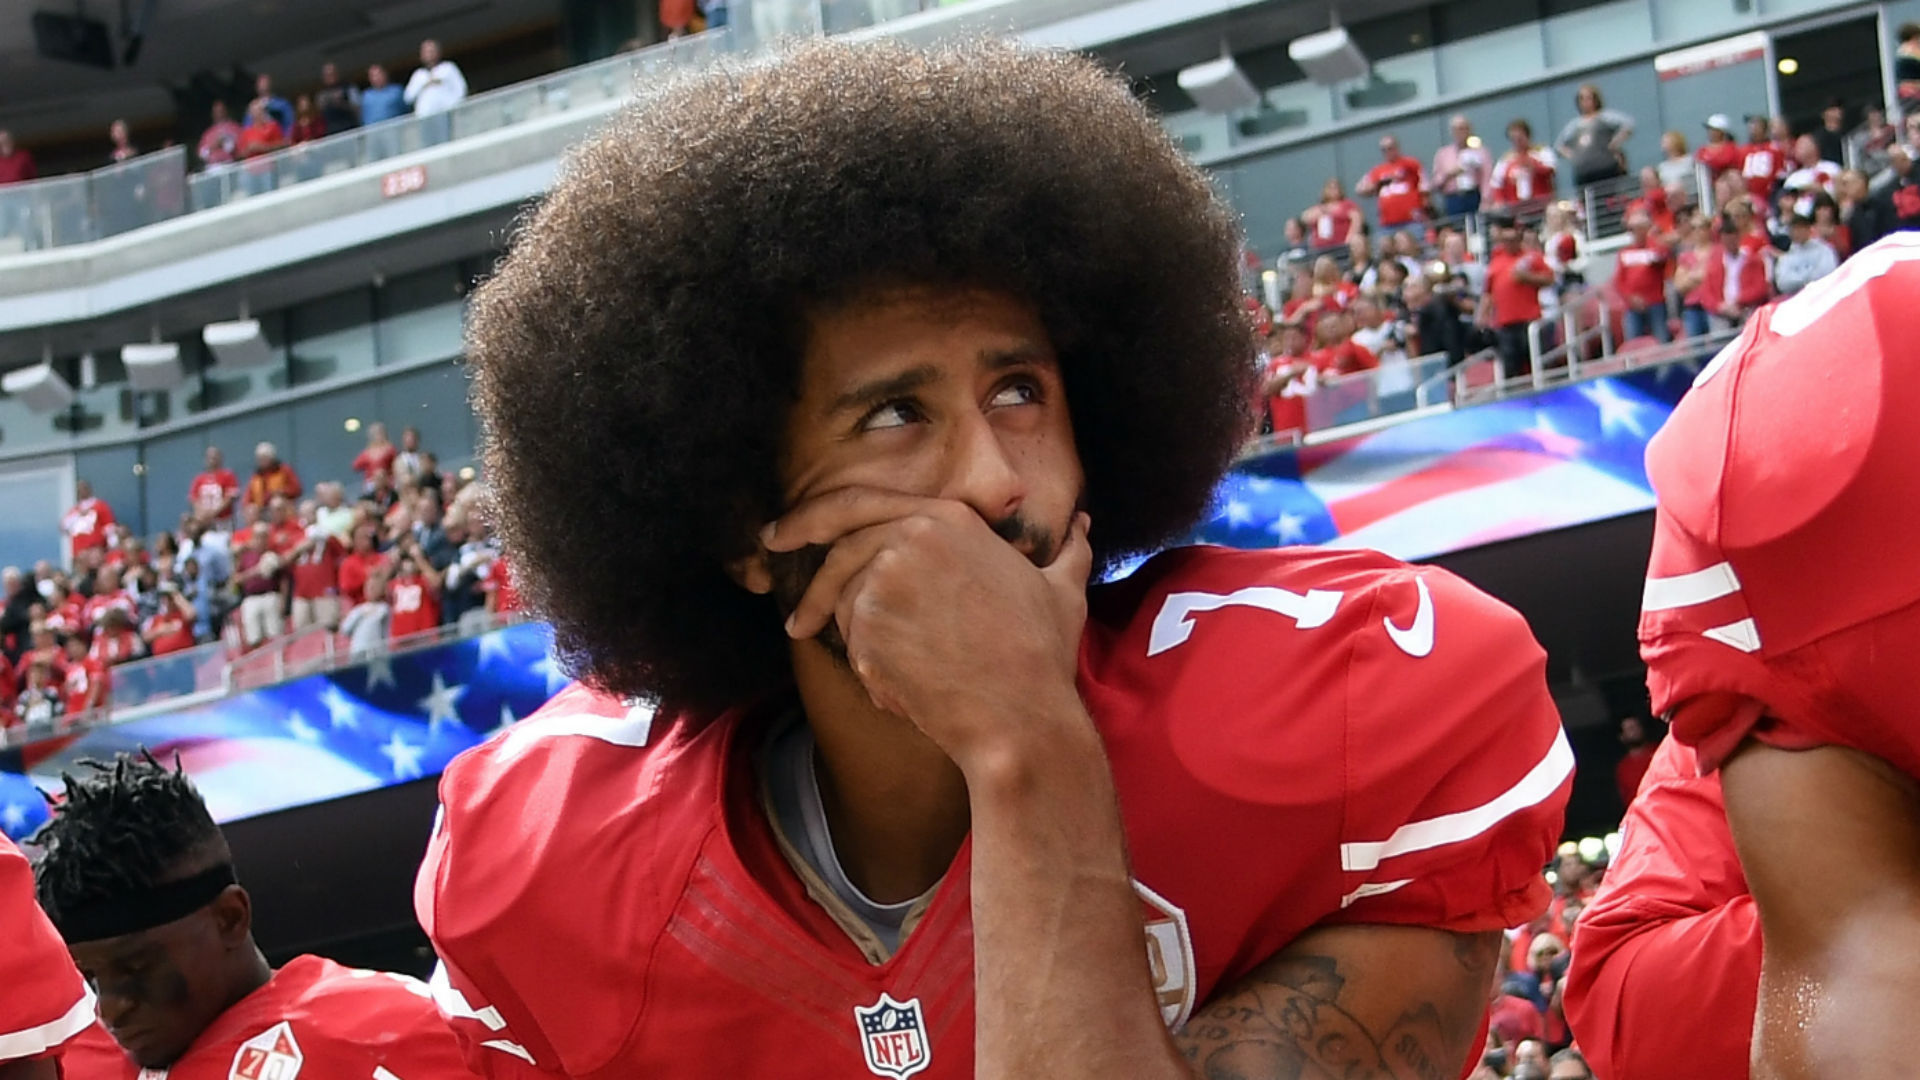 Colin Kaepernick kneeling timeline: How protests during the national anthem started a movement in the NFL